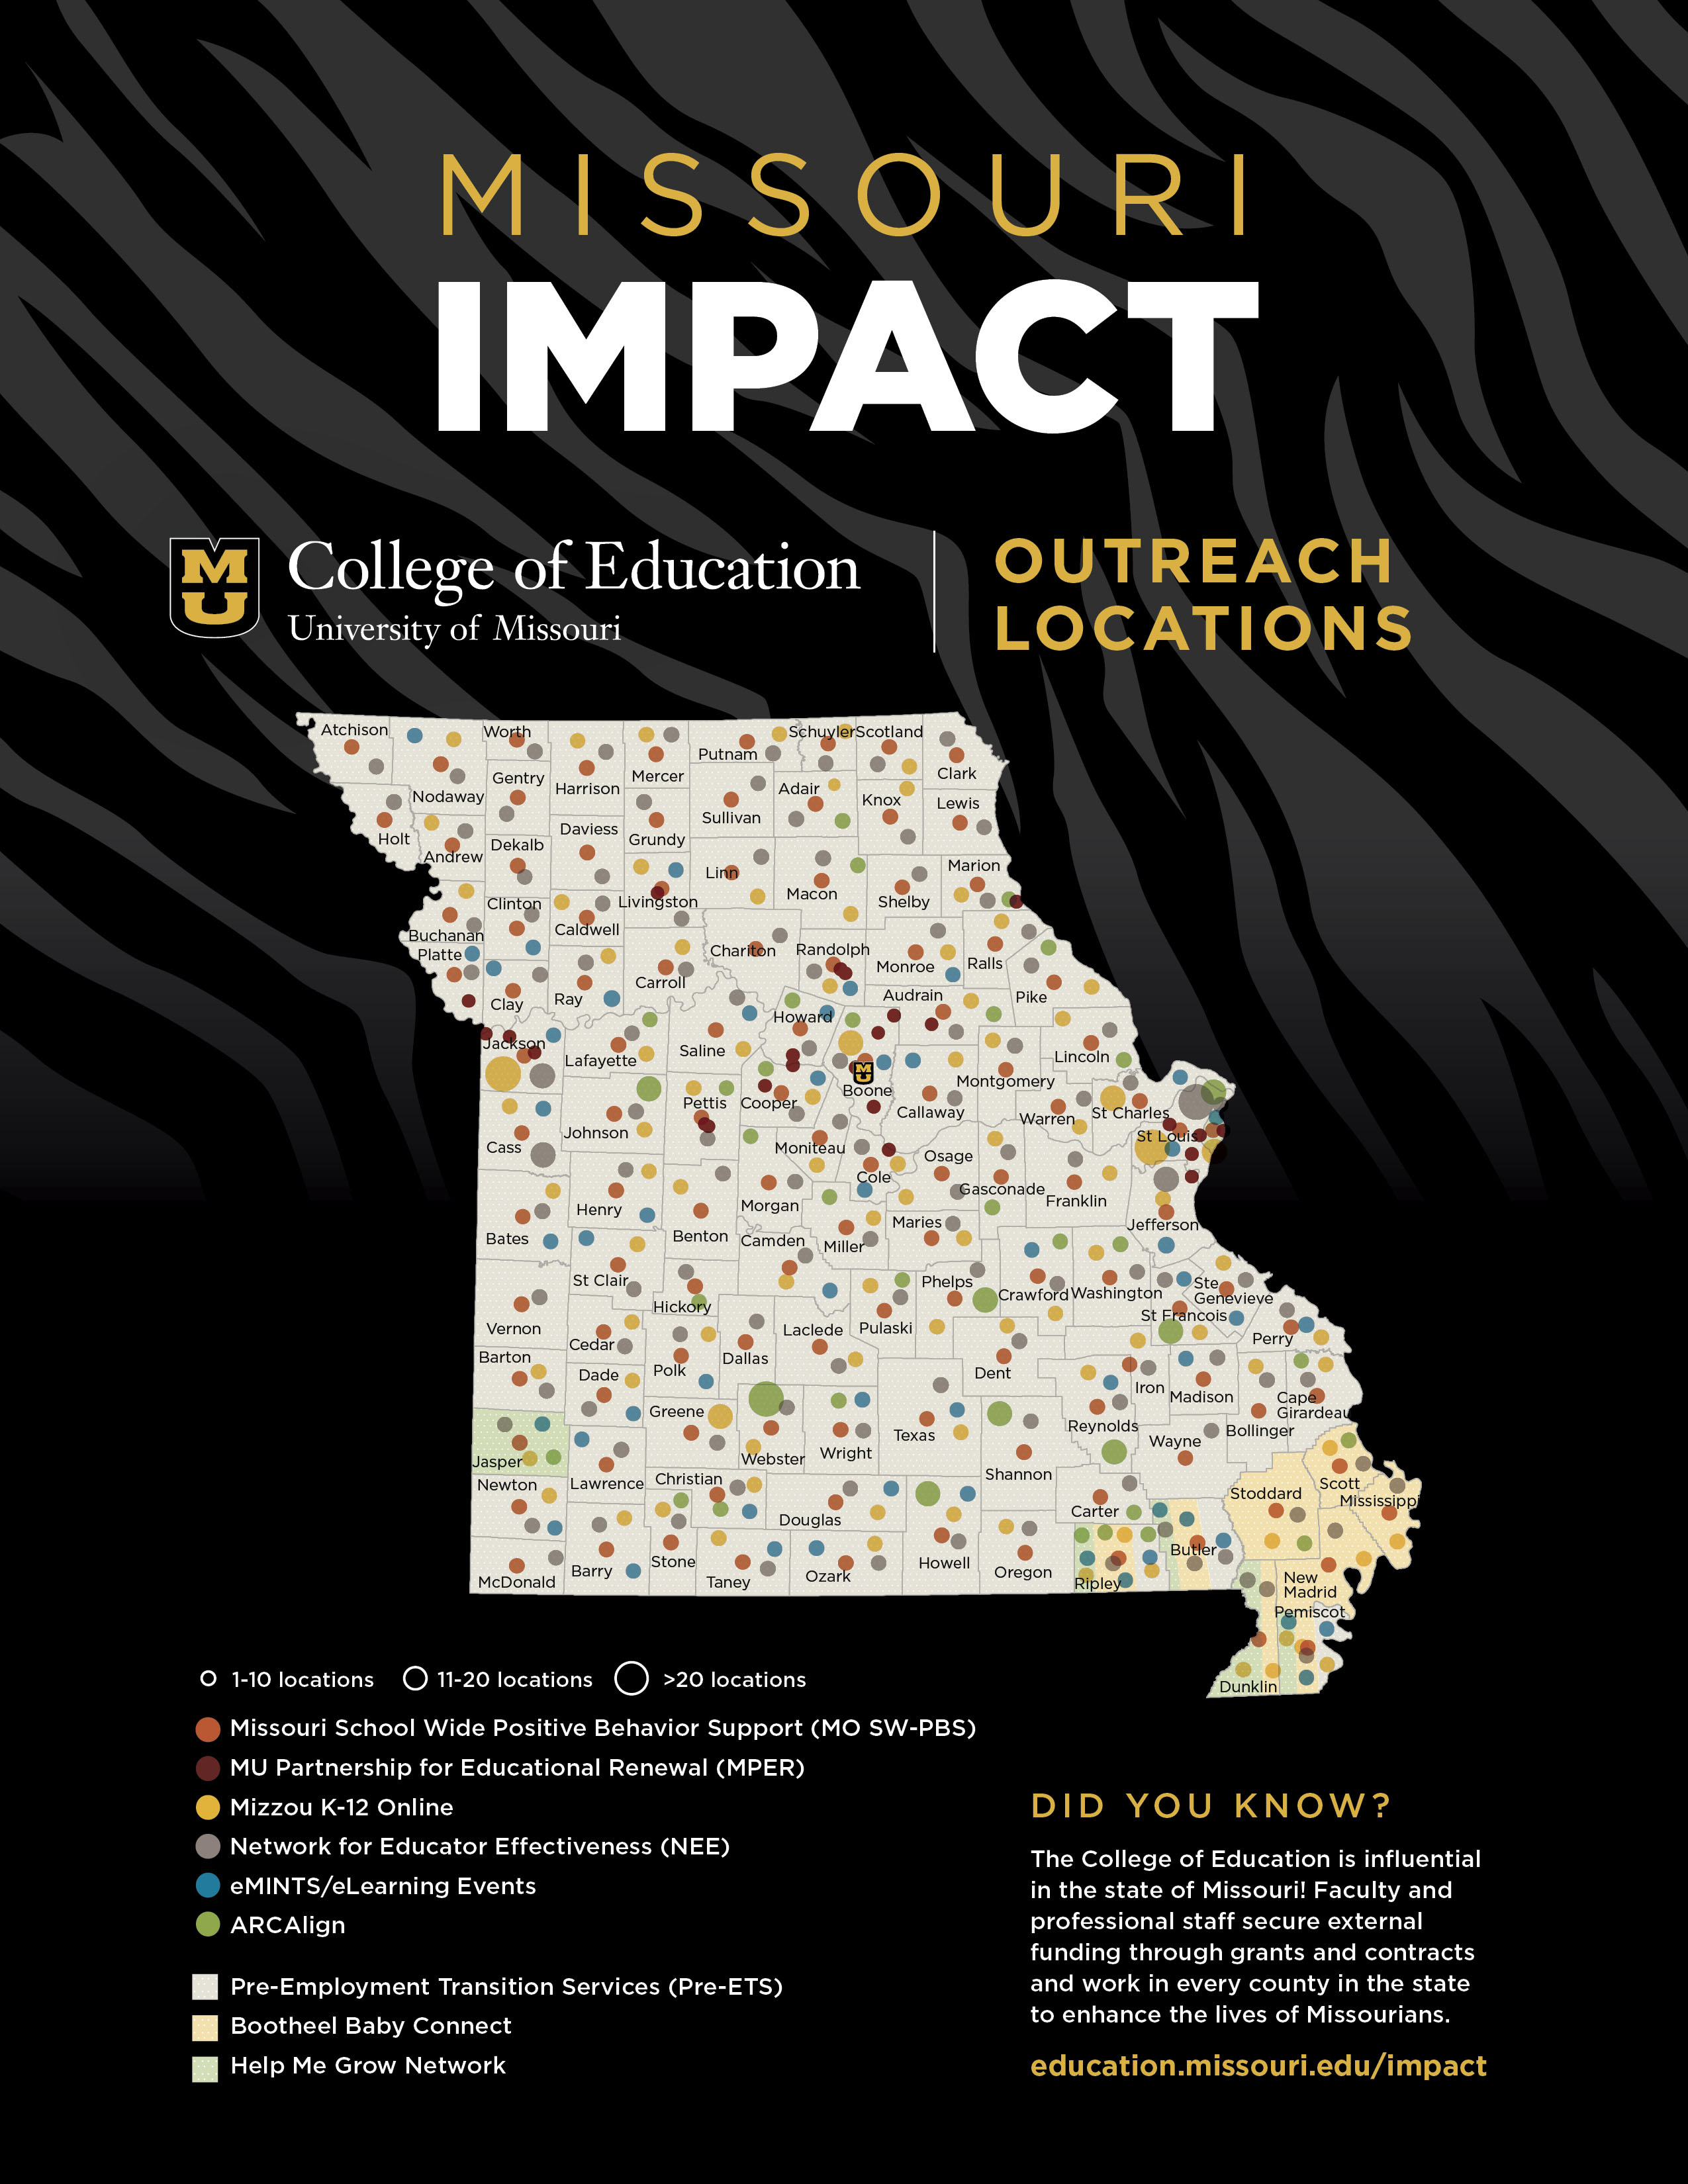 Did you know? The College of Education is influential in the state of Missouri! Faculty and professional staff secure external funding through grants and contracts and work in every county in the state to enhance the lives of Missourians. education.missouri.edu/impact